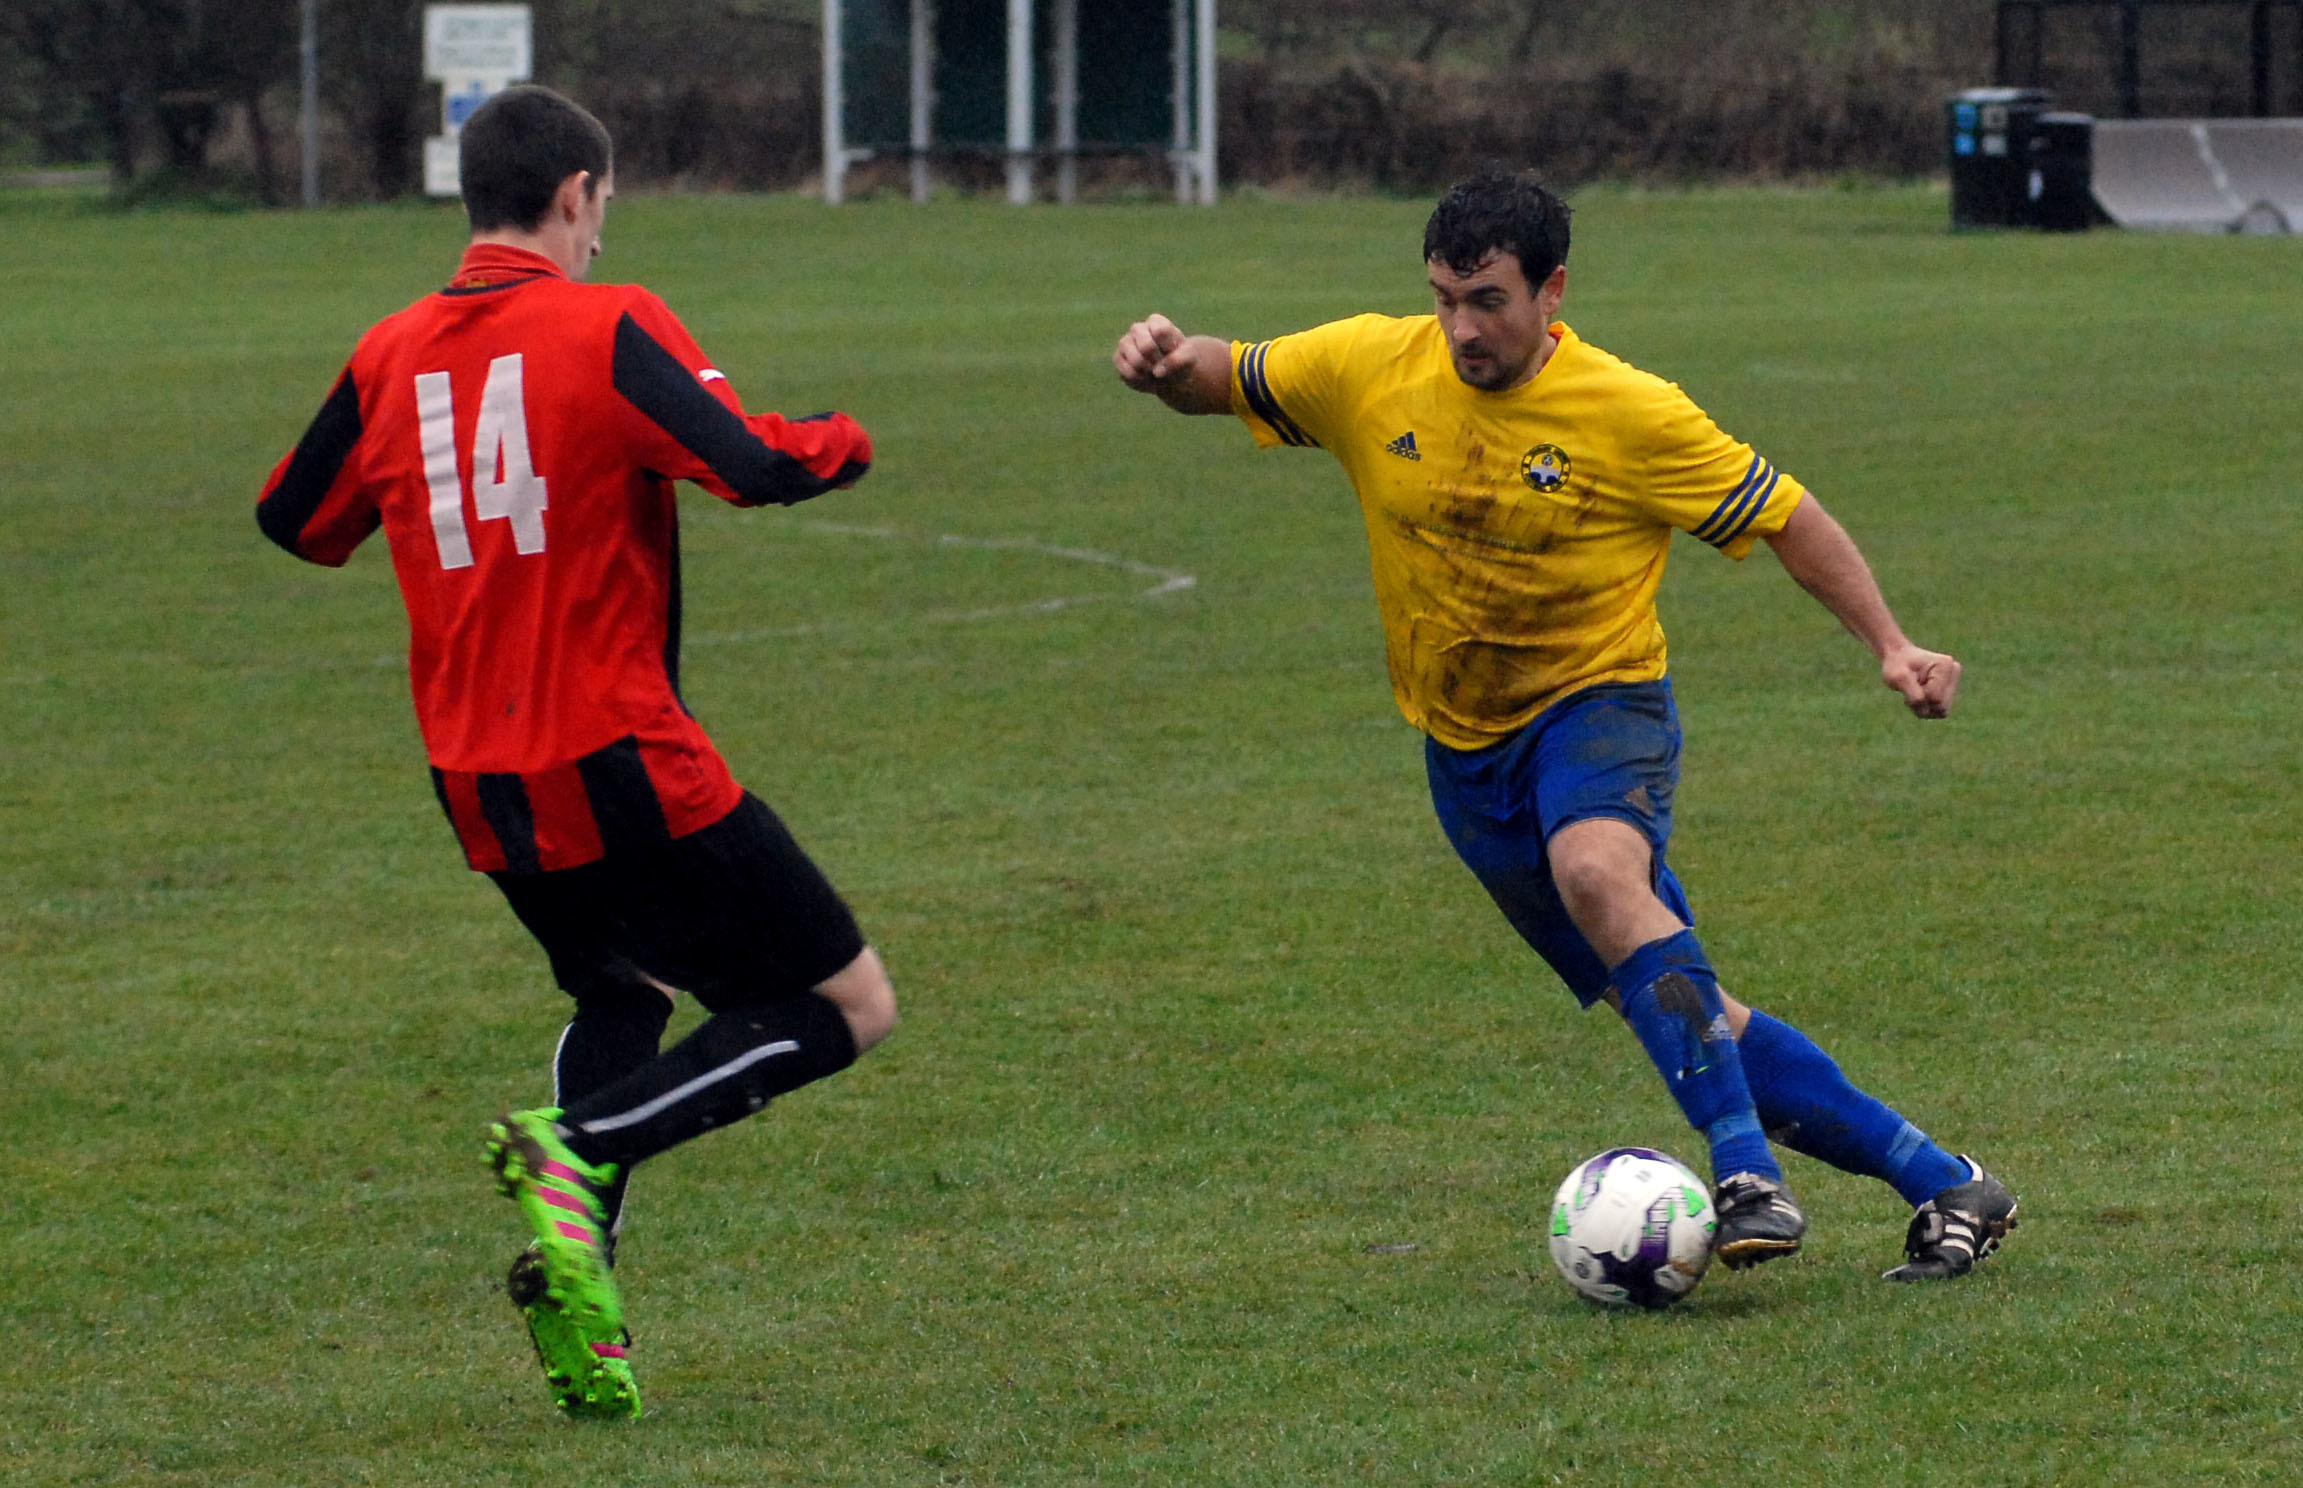 Tenbury United's Aaron Morris was left regretting missing a free header as his side lost on penalties